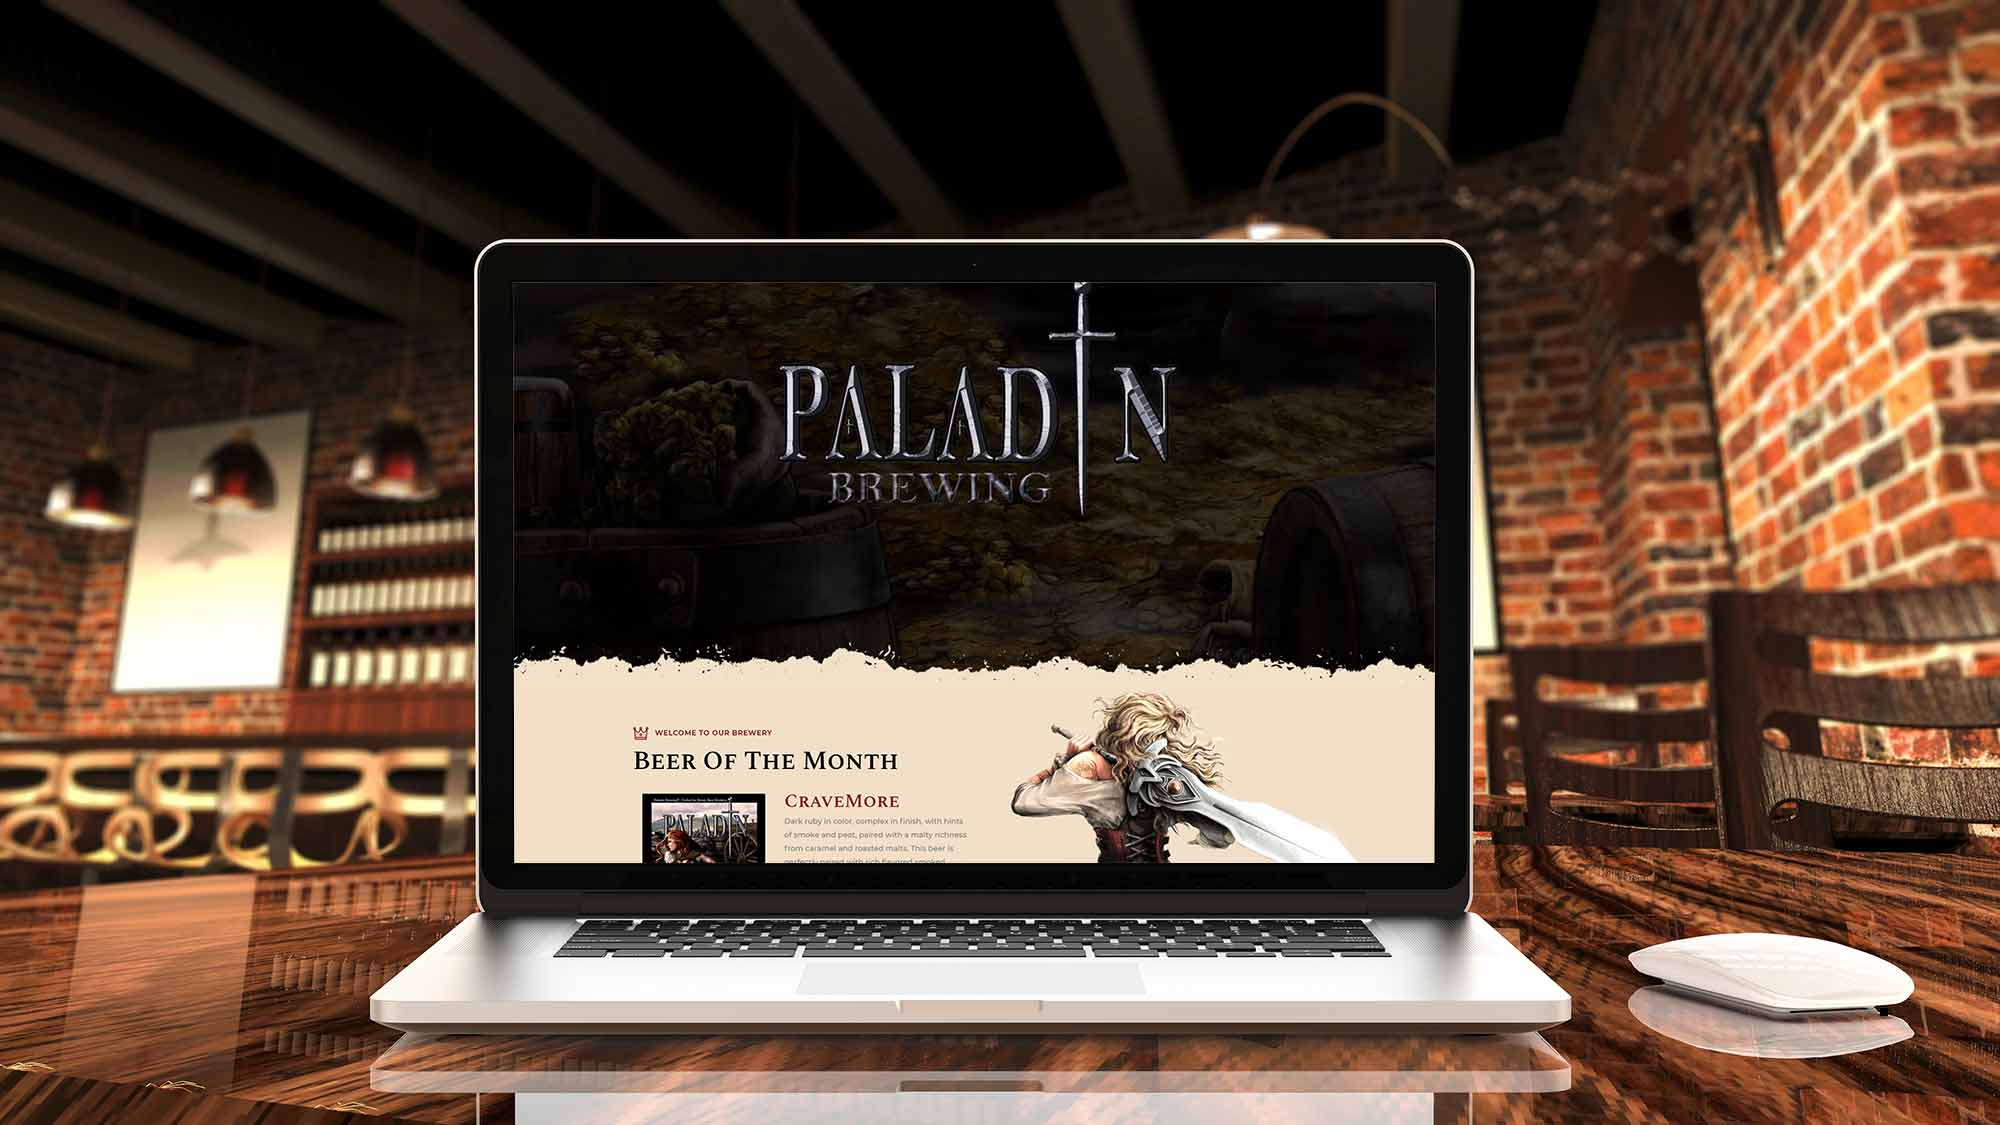 brewery website design paladin brewing displayed on a laptop